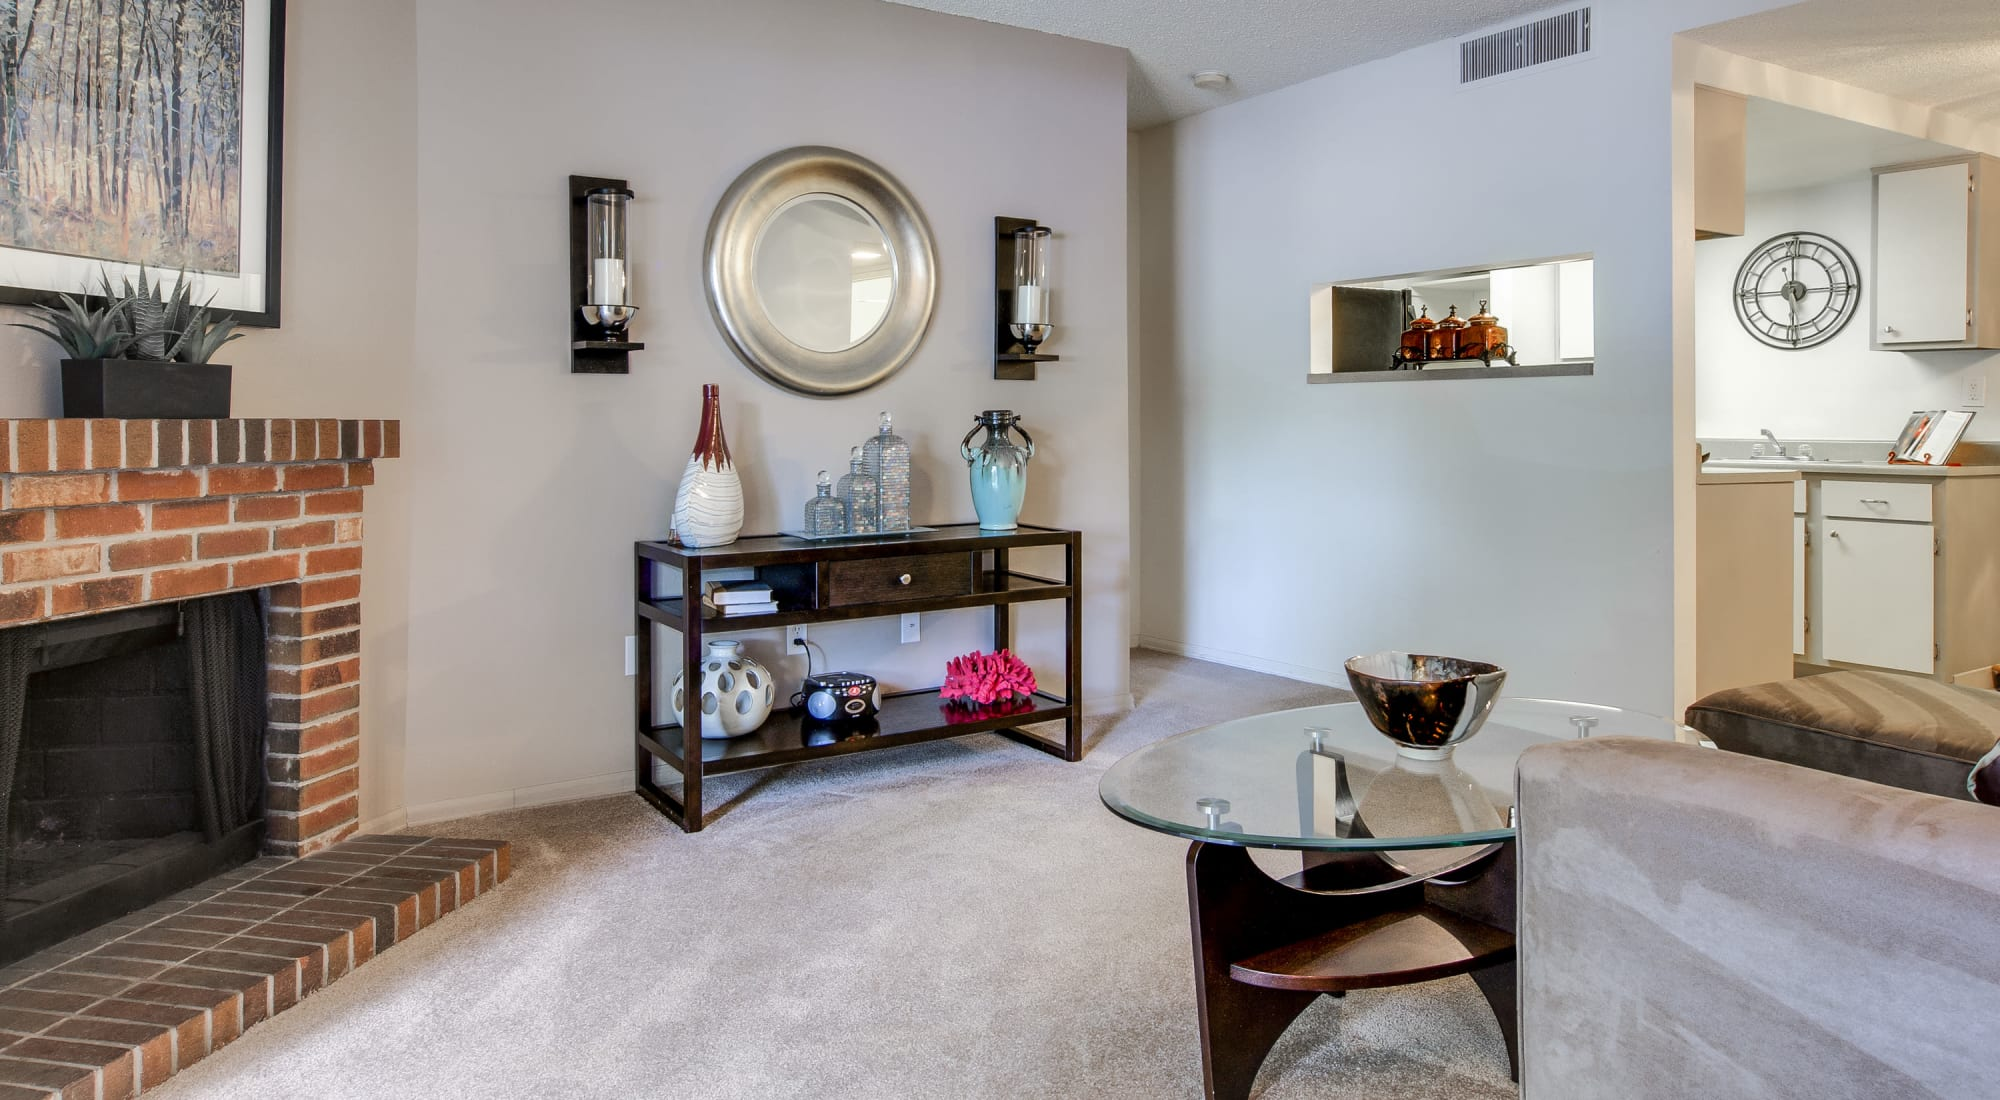 Schedule your tour of Santana Ridge in Denver, Colorado